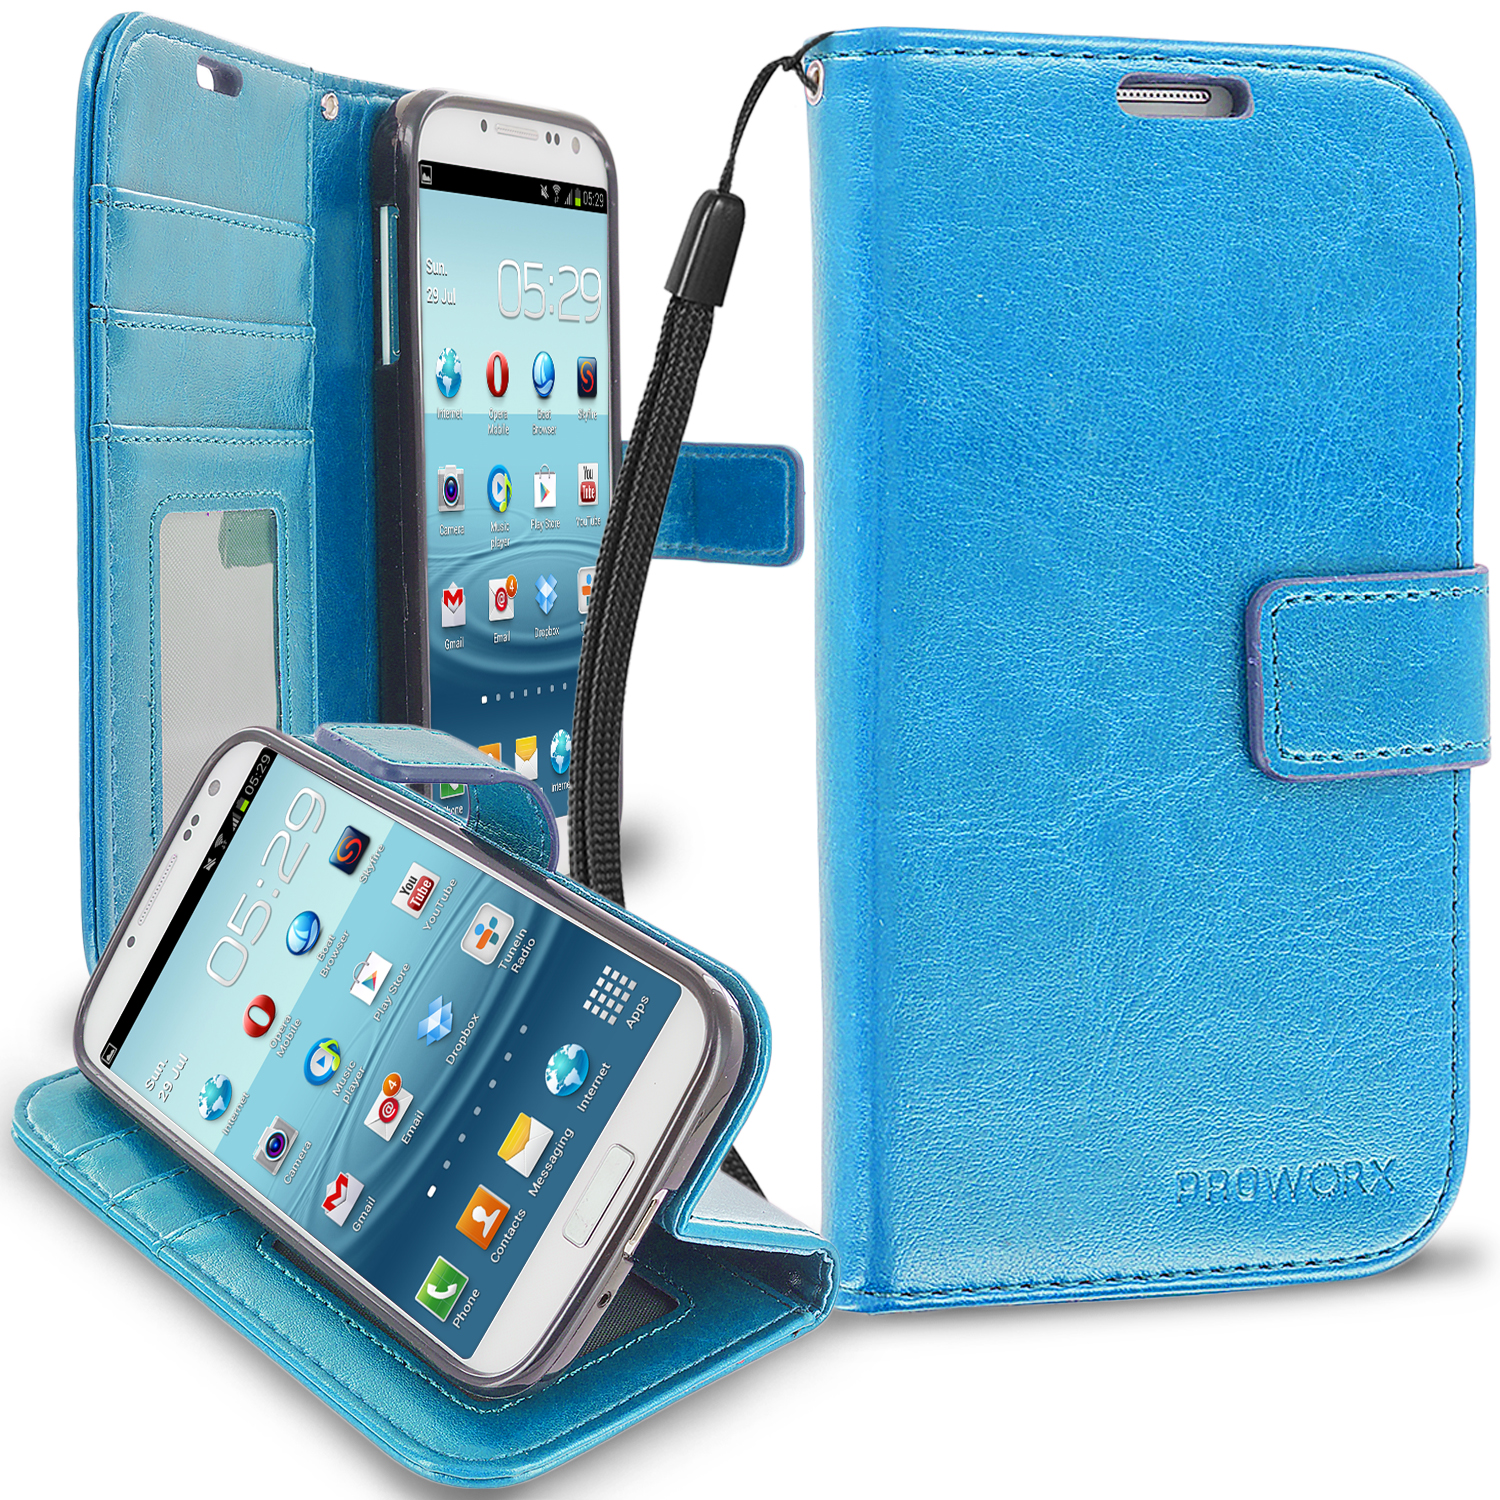 Samsung Galaxy S4 Baby Blue ProWorx Wallet Case Luxury PU Leather Case Cover With Card Slots & Stand